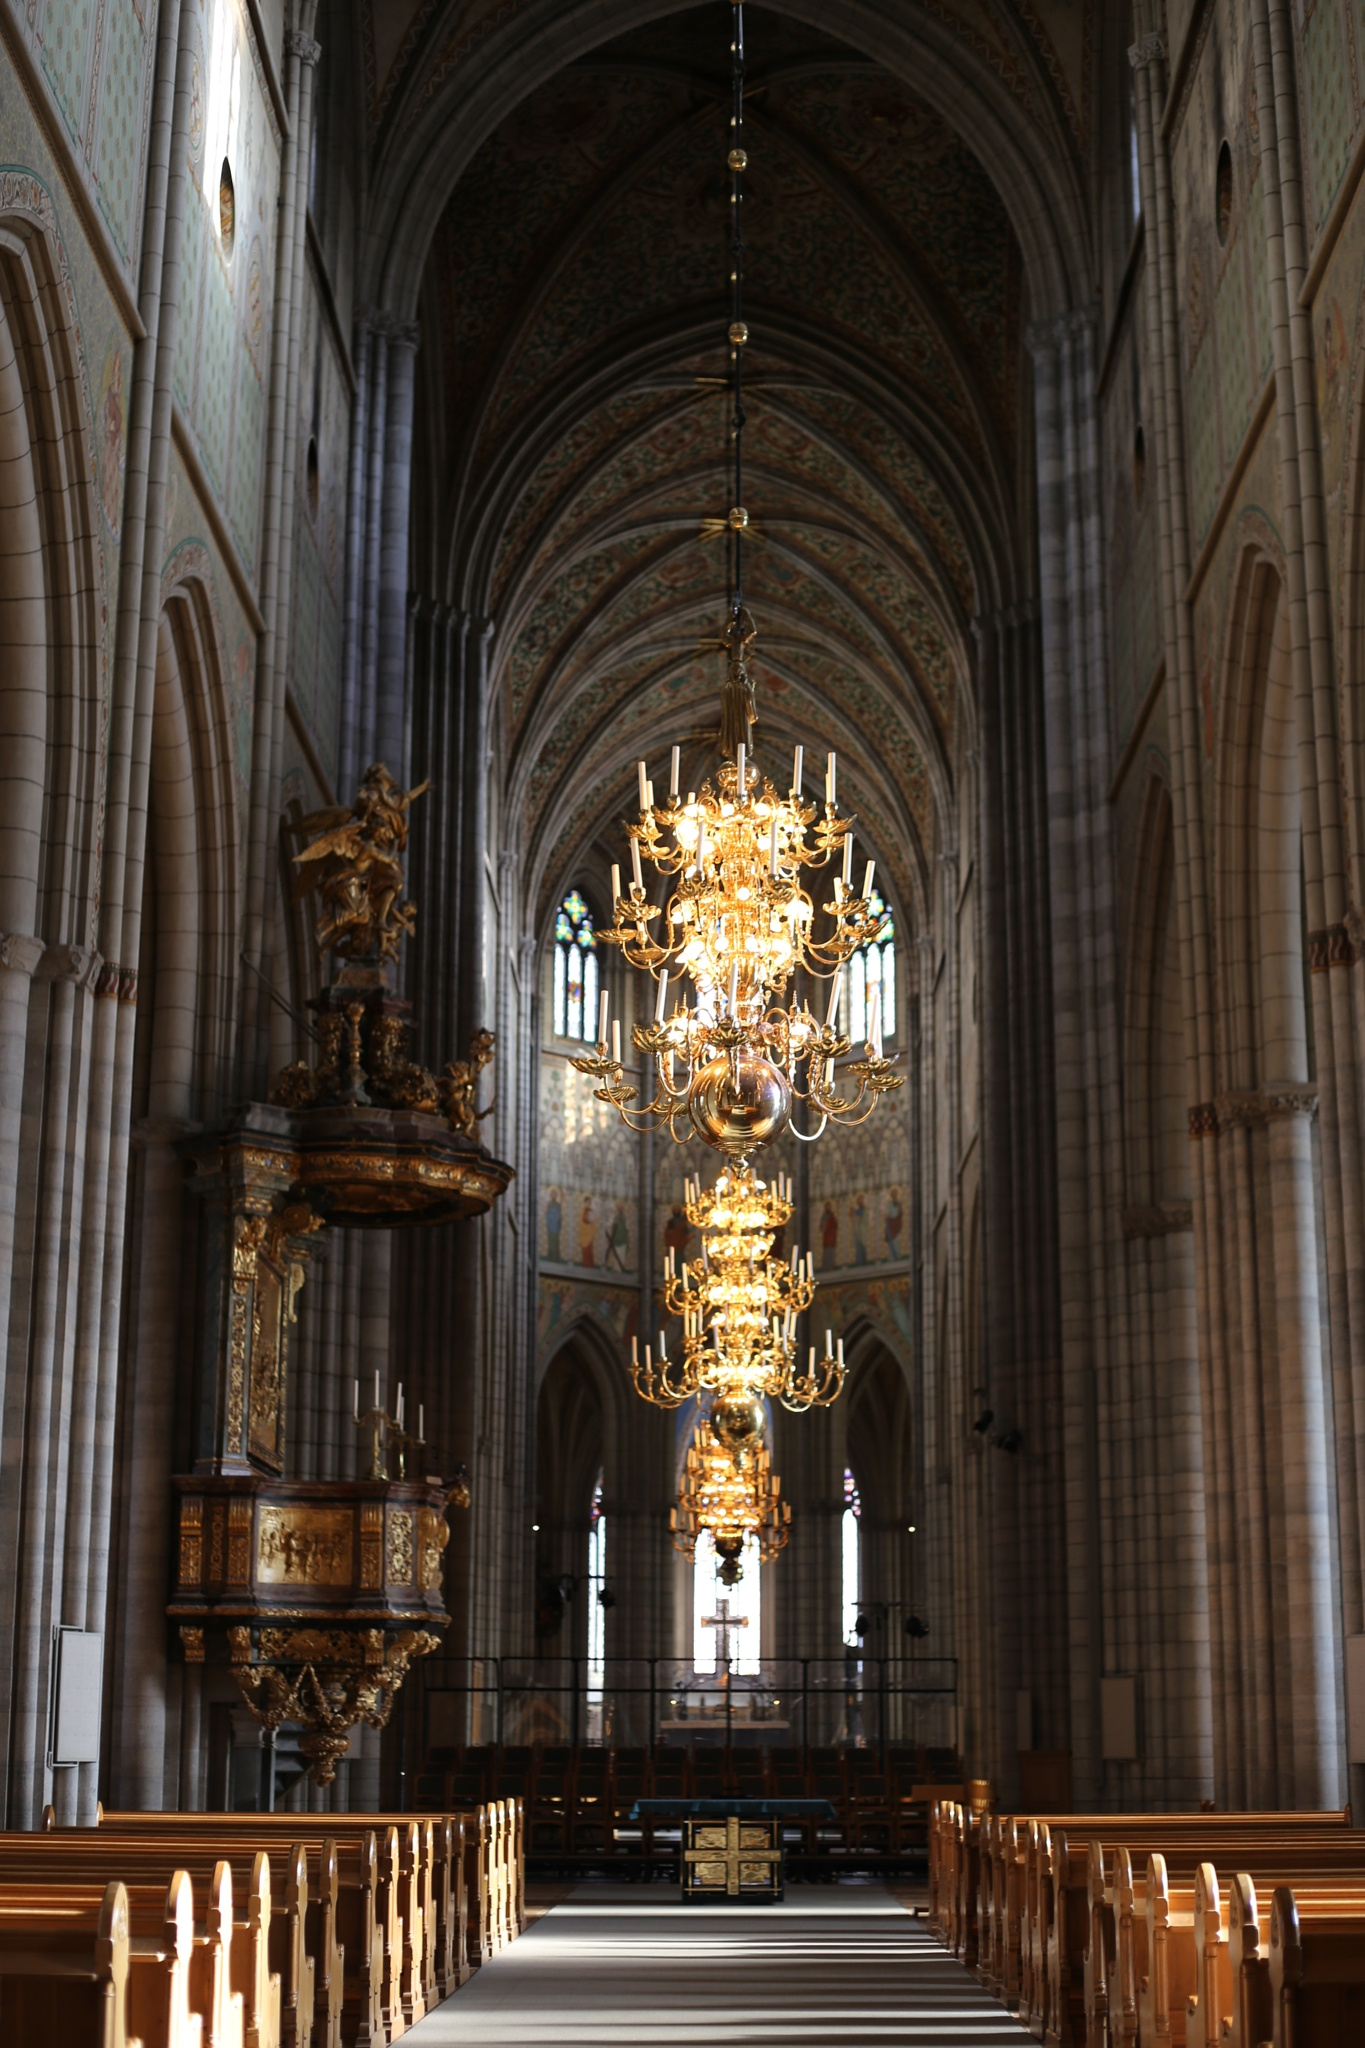 Inside the cathedral of Uppsala by fotofredrica